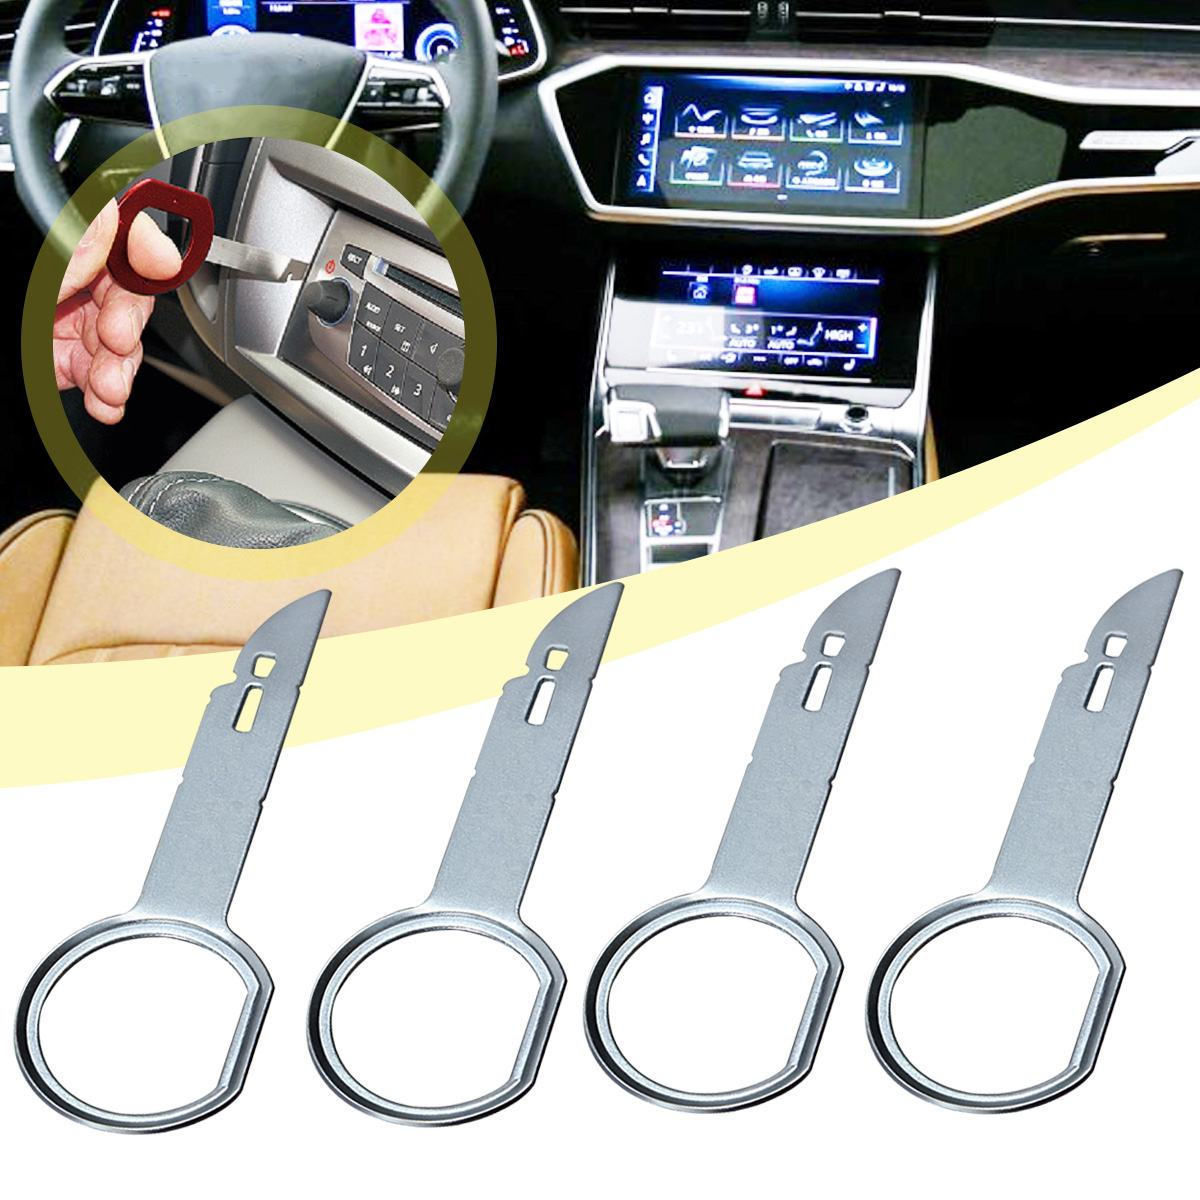 Inex VW Caddy Car CD Stereo Removal Release Keys Radio Extraction Tools Pins IX-106